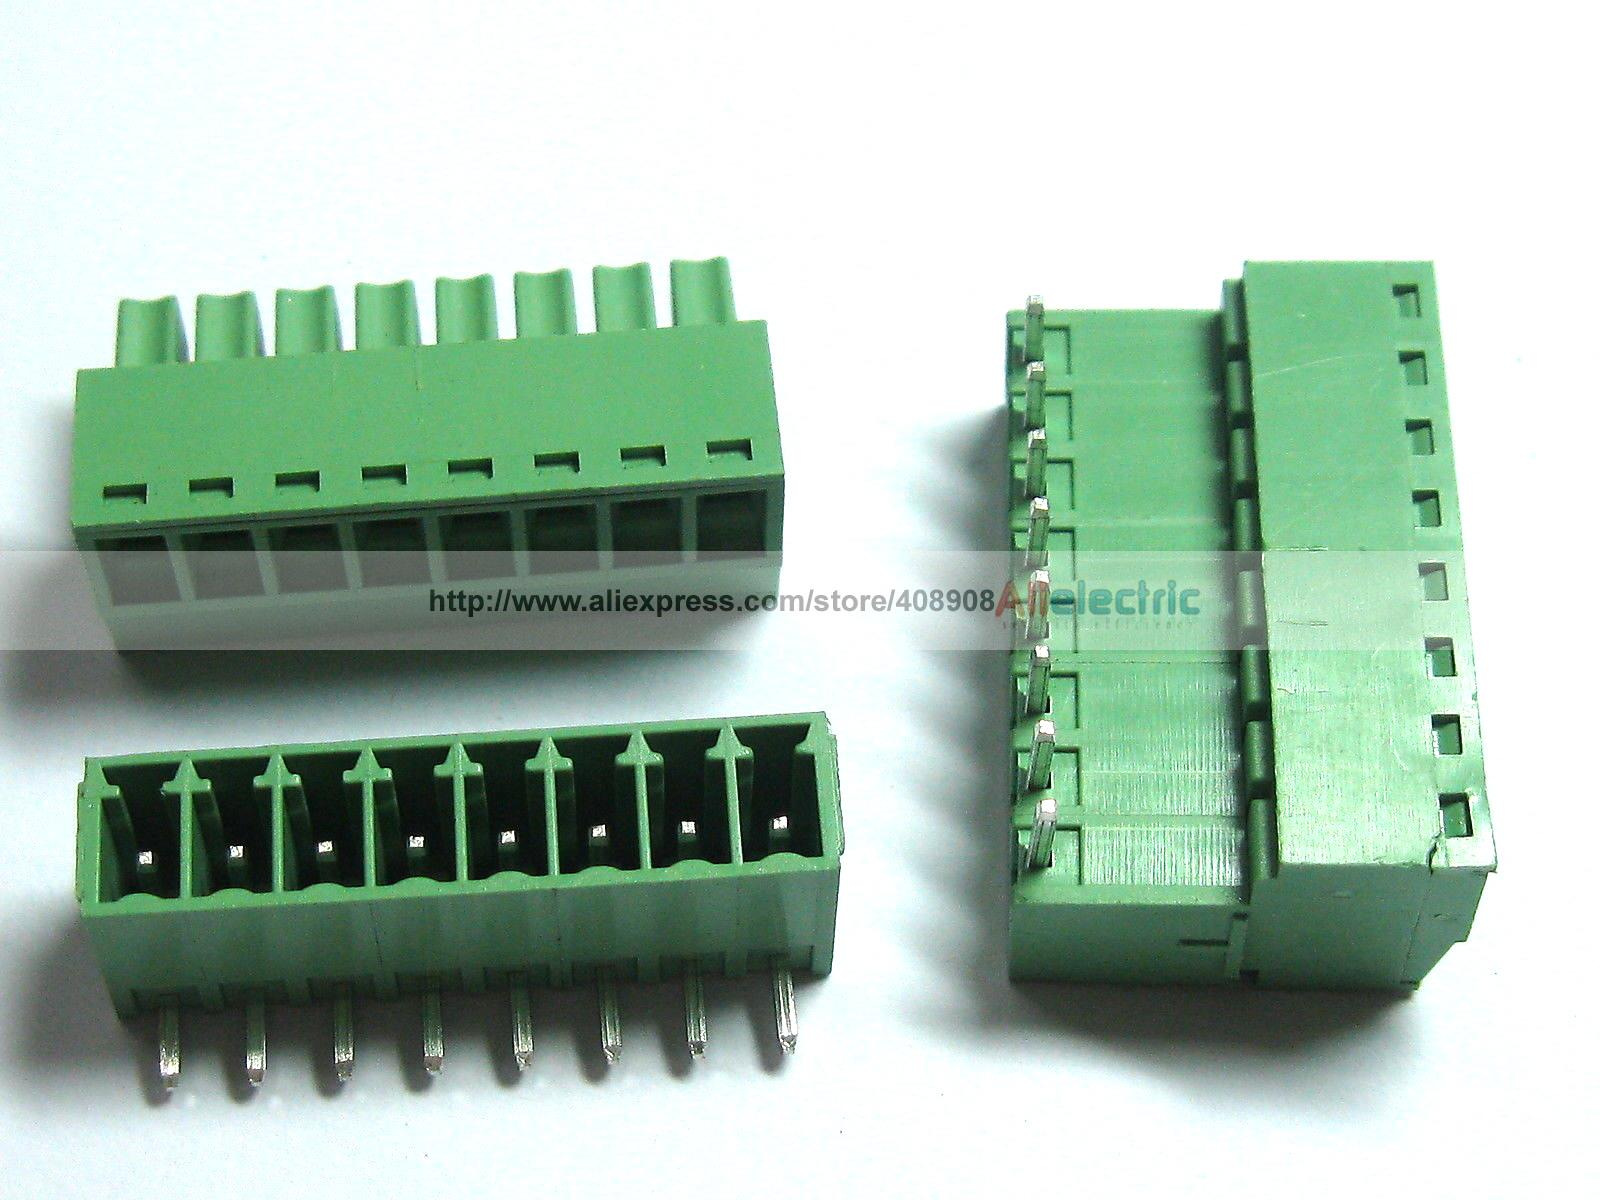 цена на 12 Pcs Screw Terminal Block Connector 3.5mm Angle 8 Pin Way Green Pluggable Type